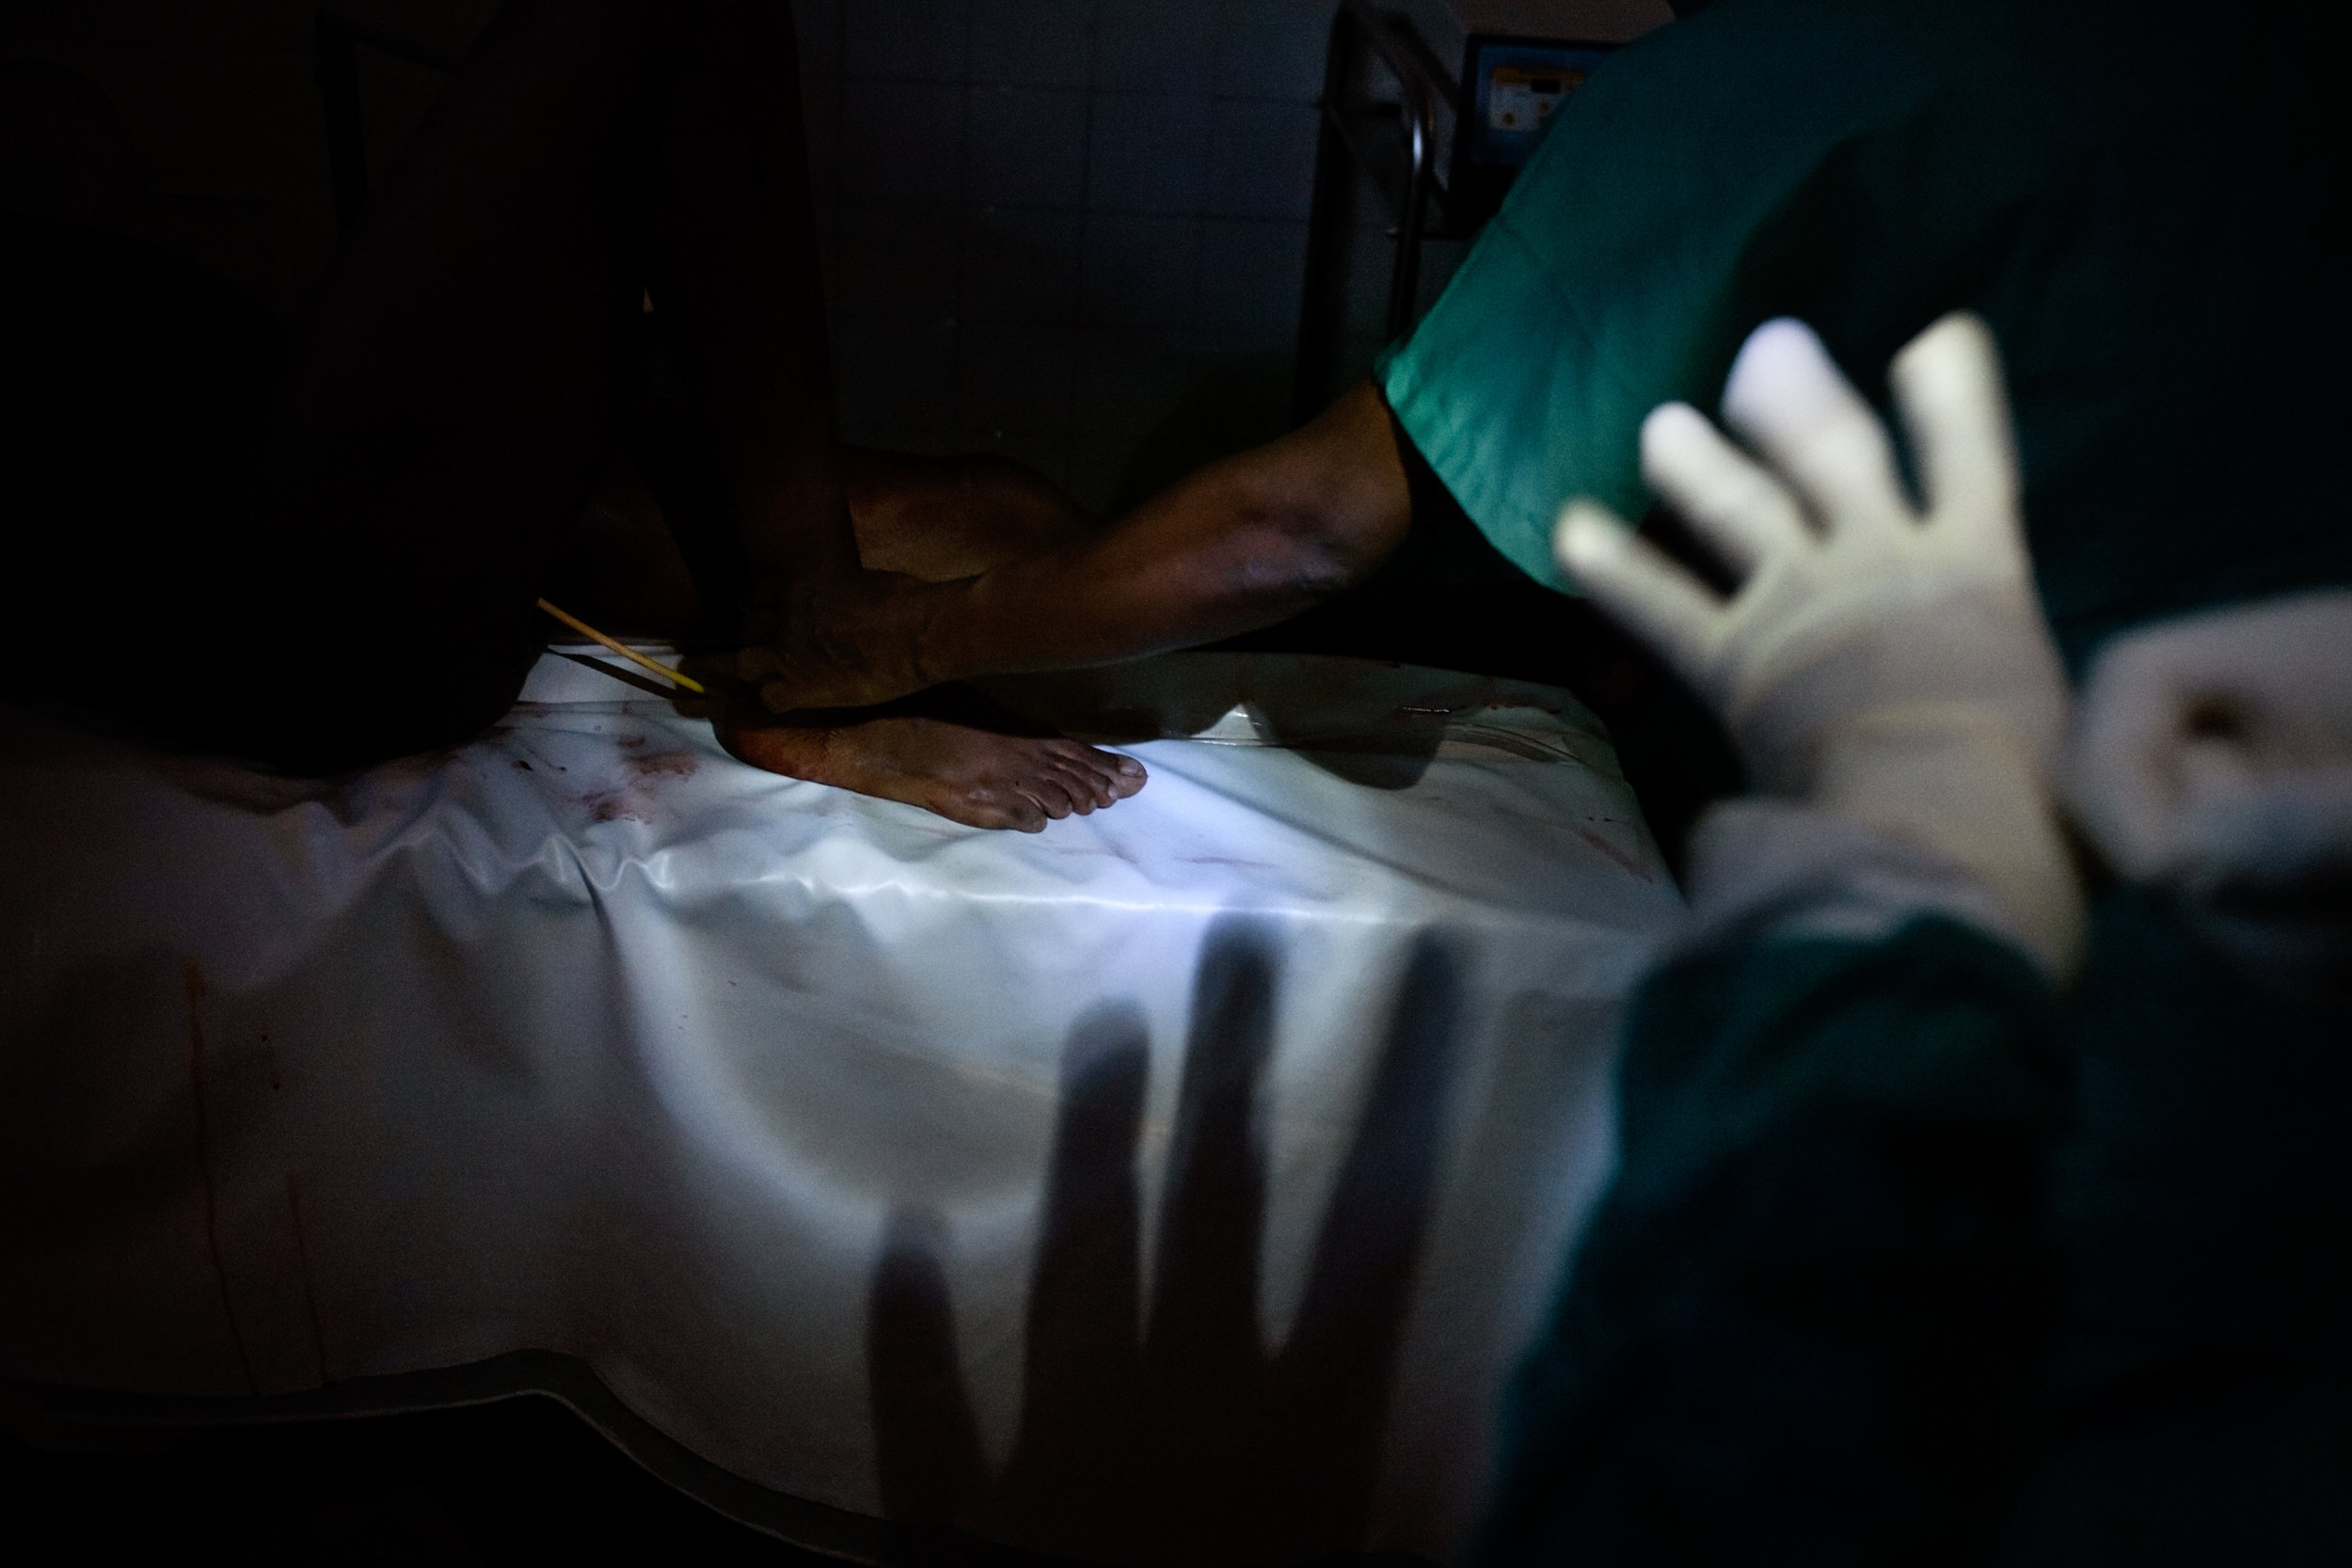 A surgical team performs a c-section during a power cut in Abobo Sud Hospital in Abidjan, Ivory Coast, April 18, 2011. A week after the end of the military standoff in Abidjan, very few hospitals were open.